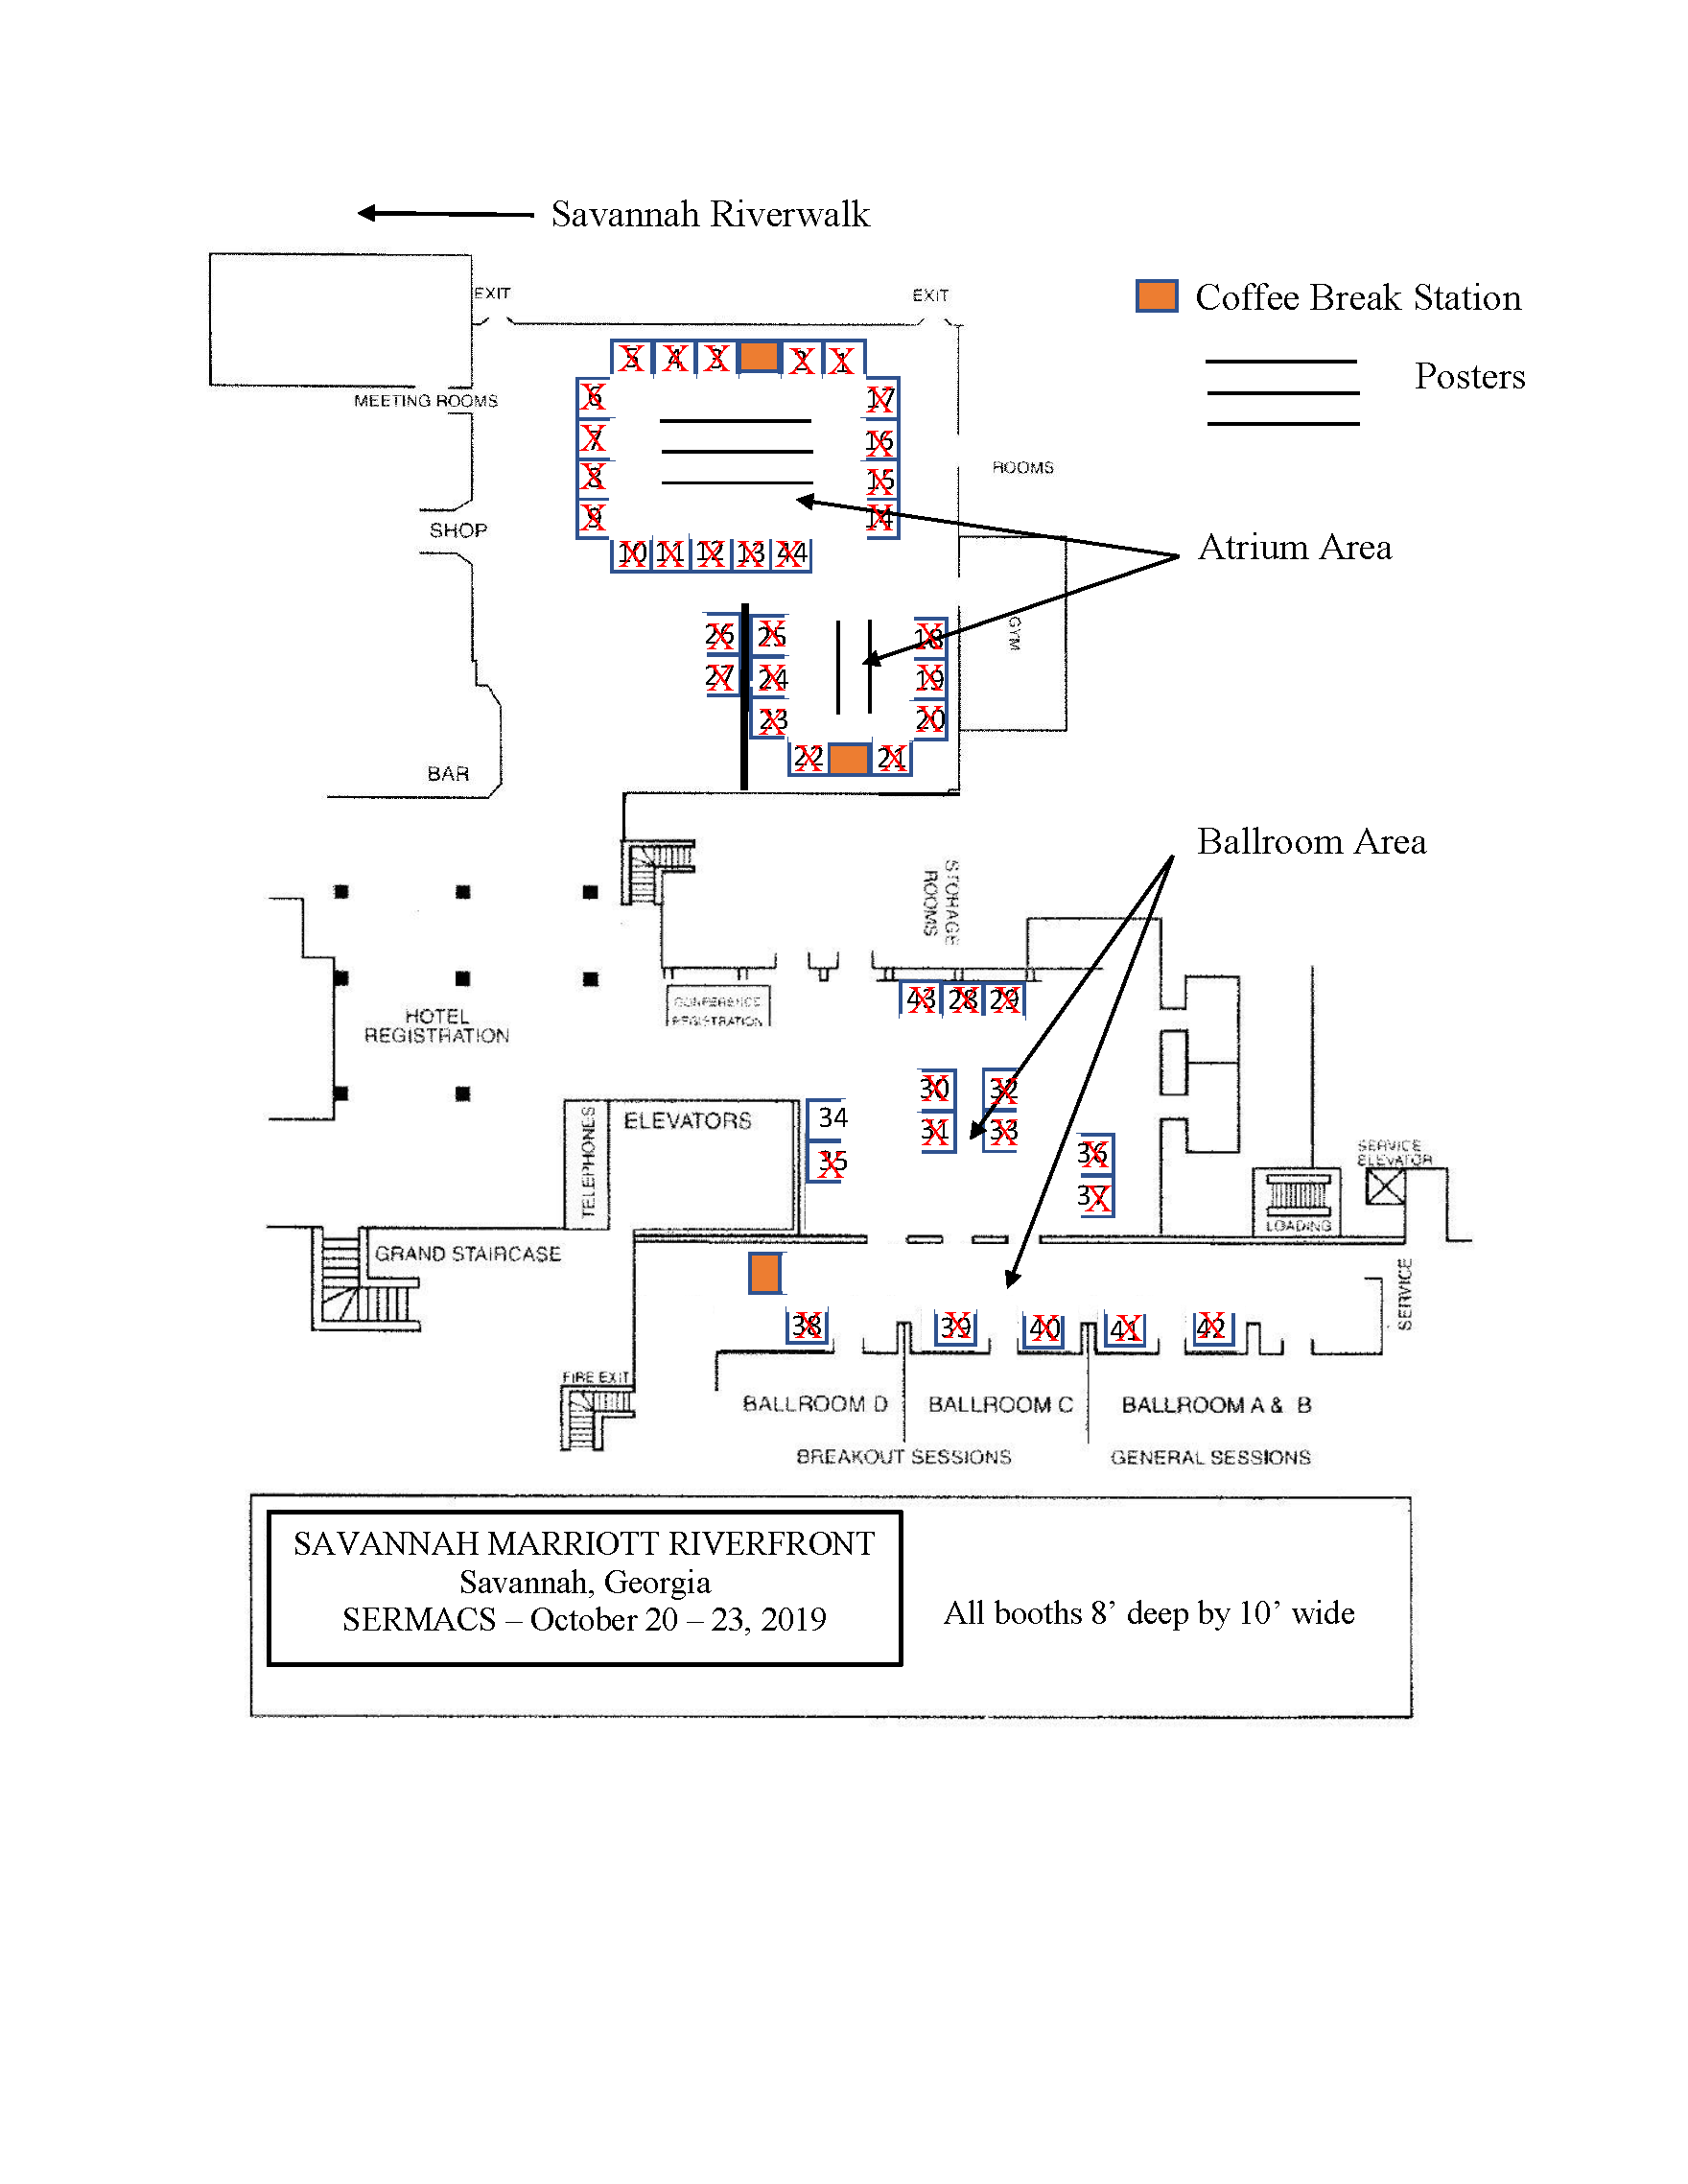 Proposed layout of exposition hall with posters